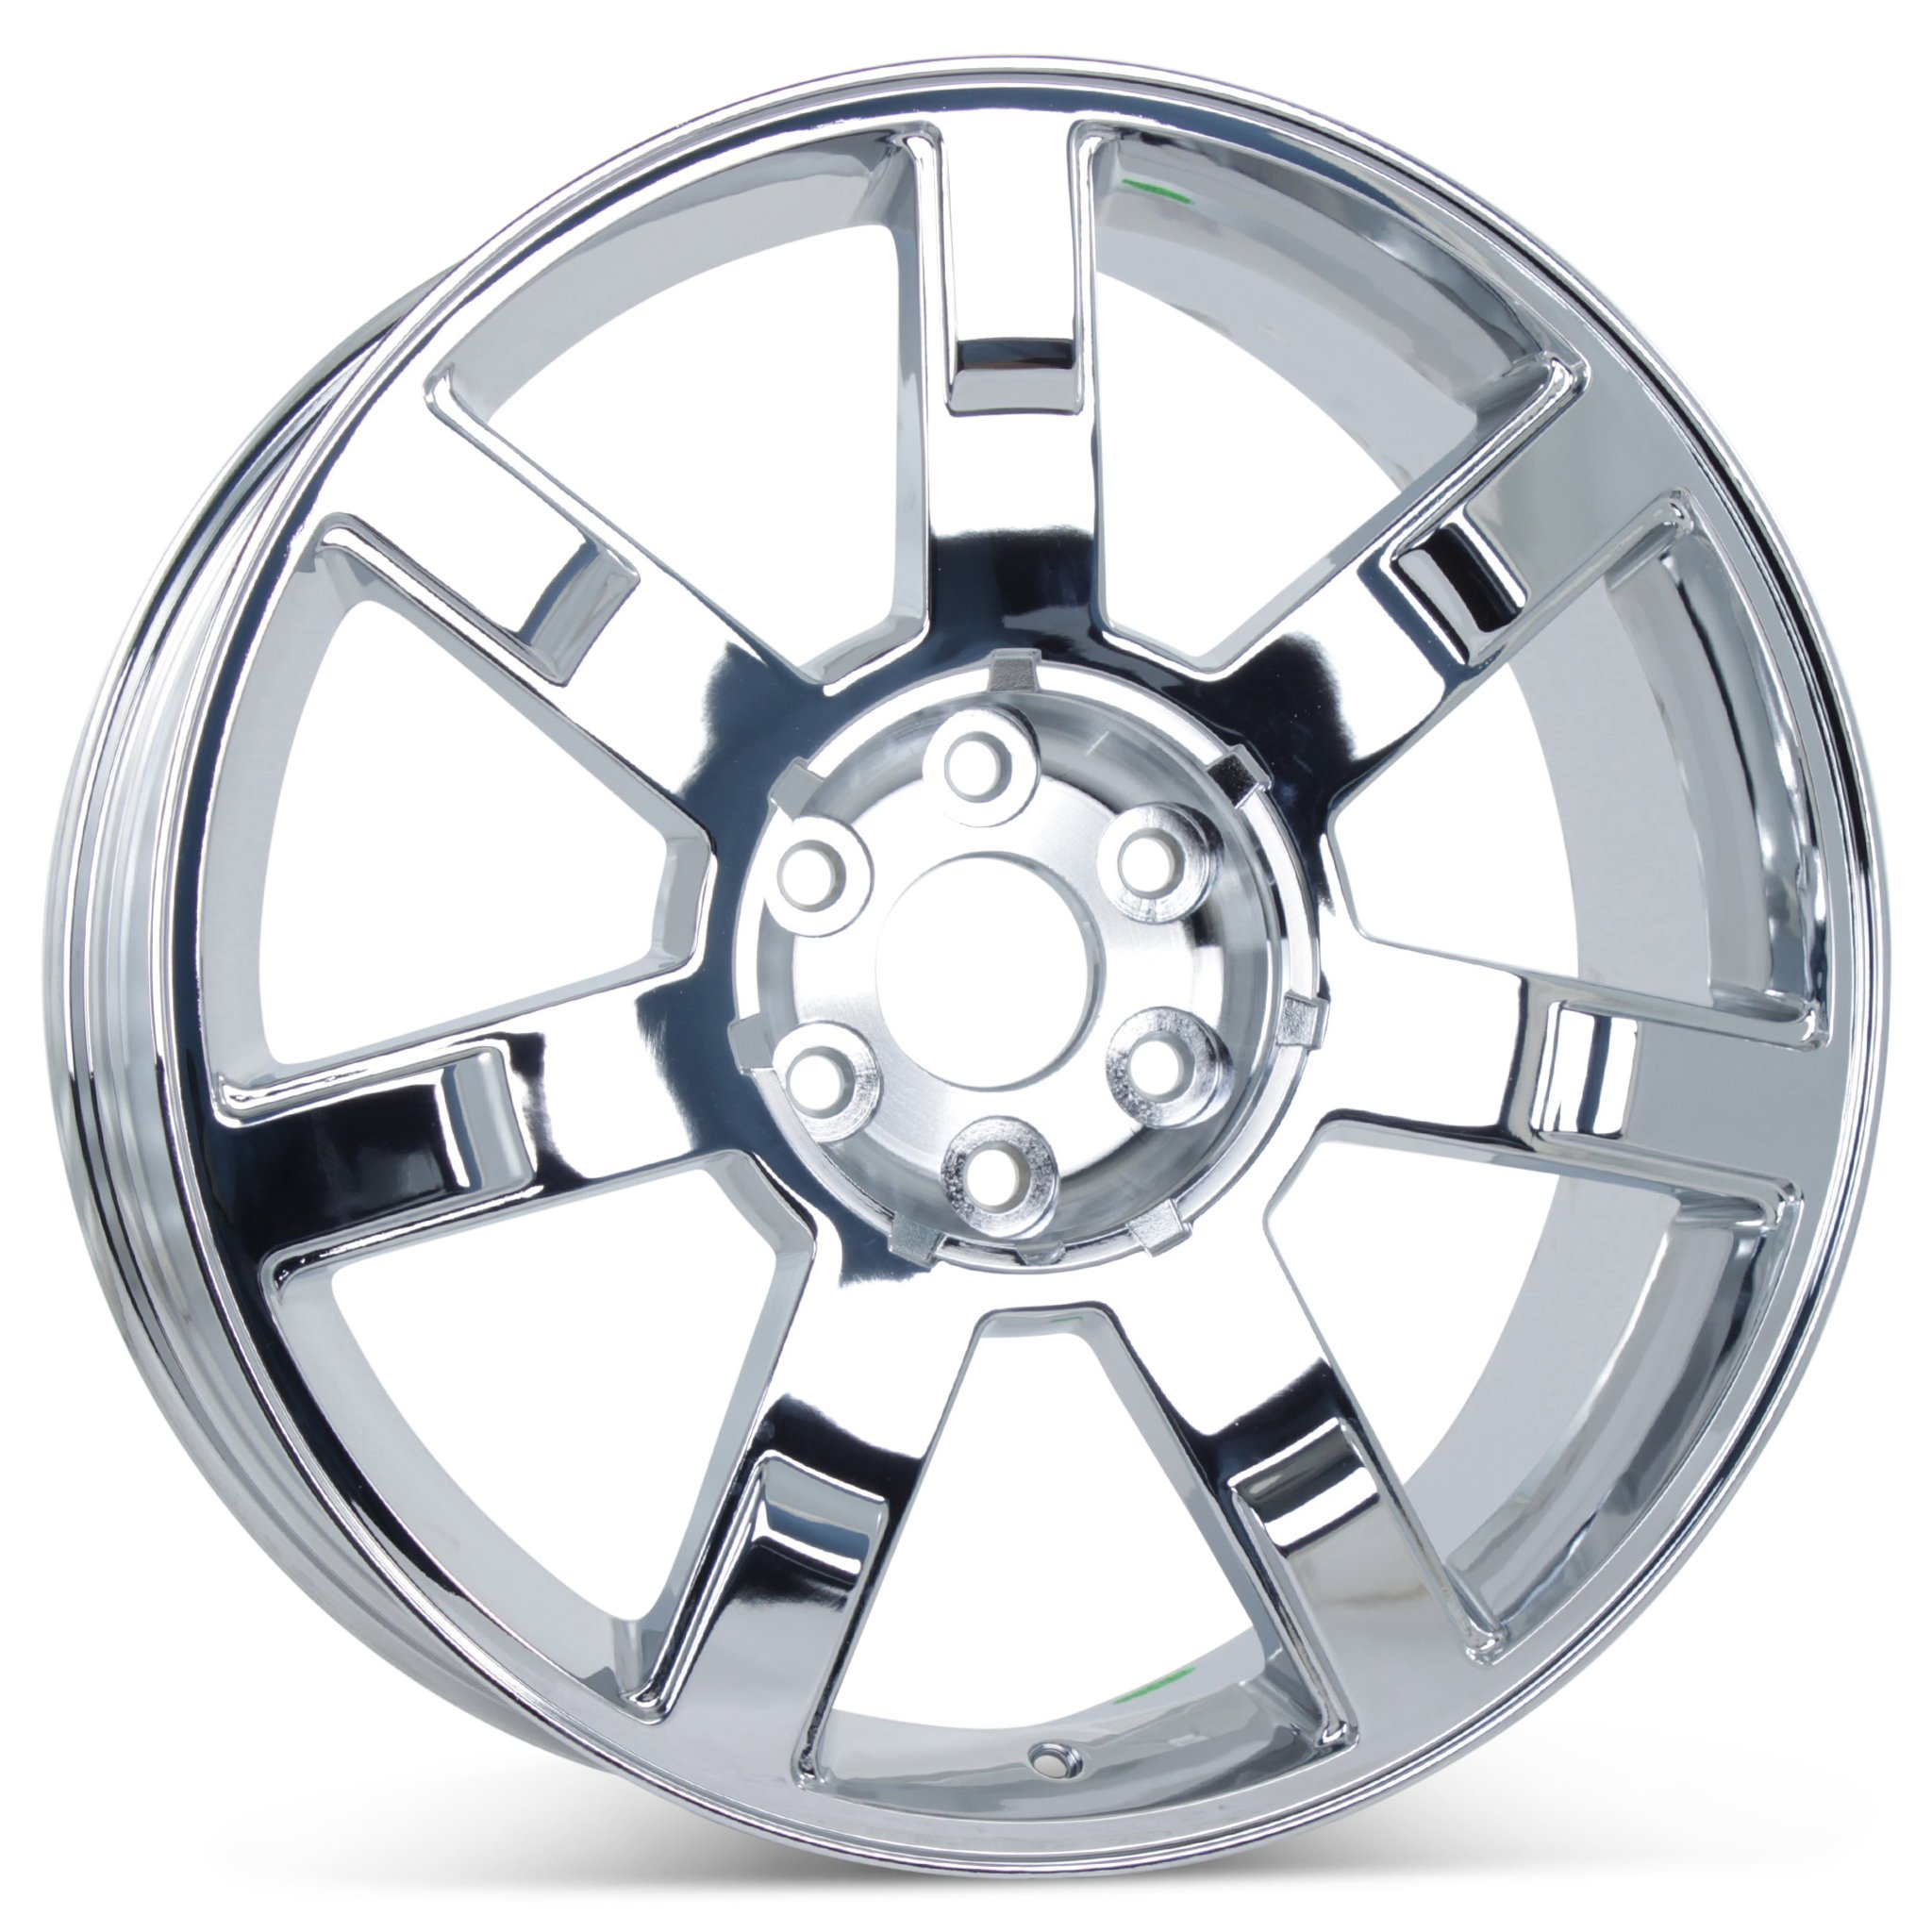 New 22'' x 9'' Replacement Wheel for Cadillac Escalade 2007-2013 Rim Chrome 5309 by Cadillac (Image #1)